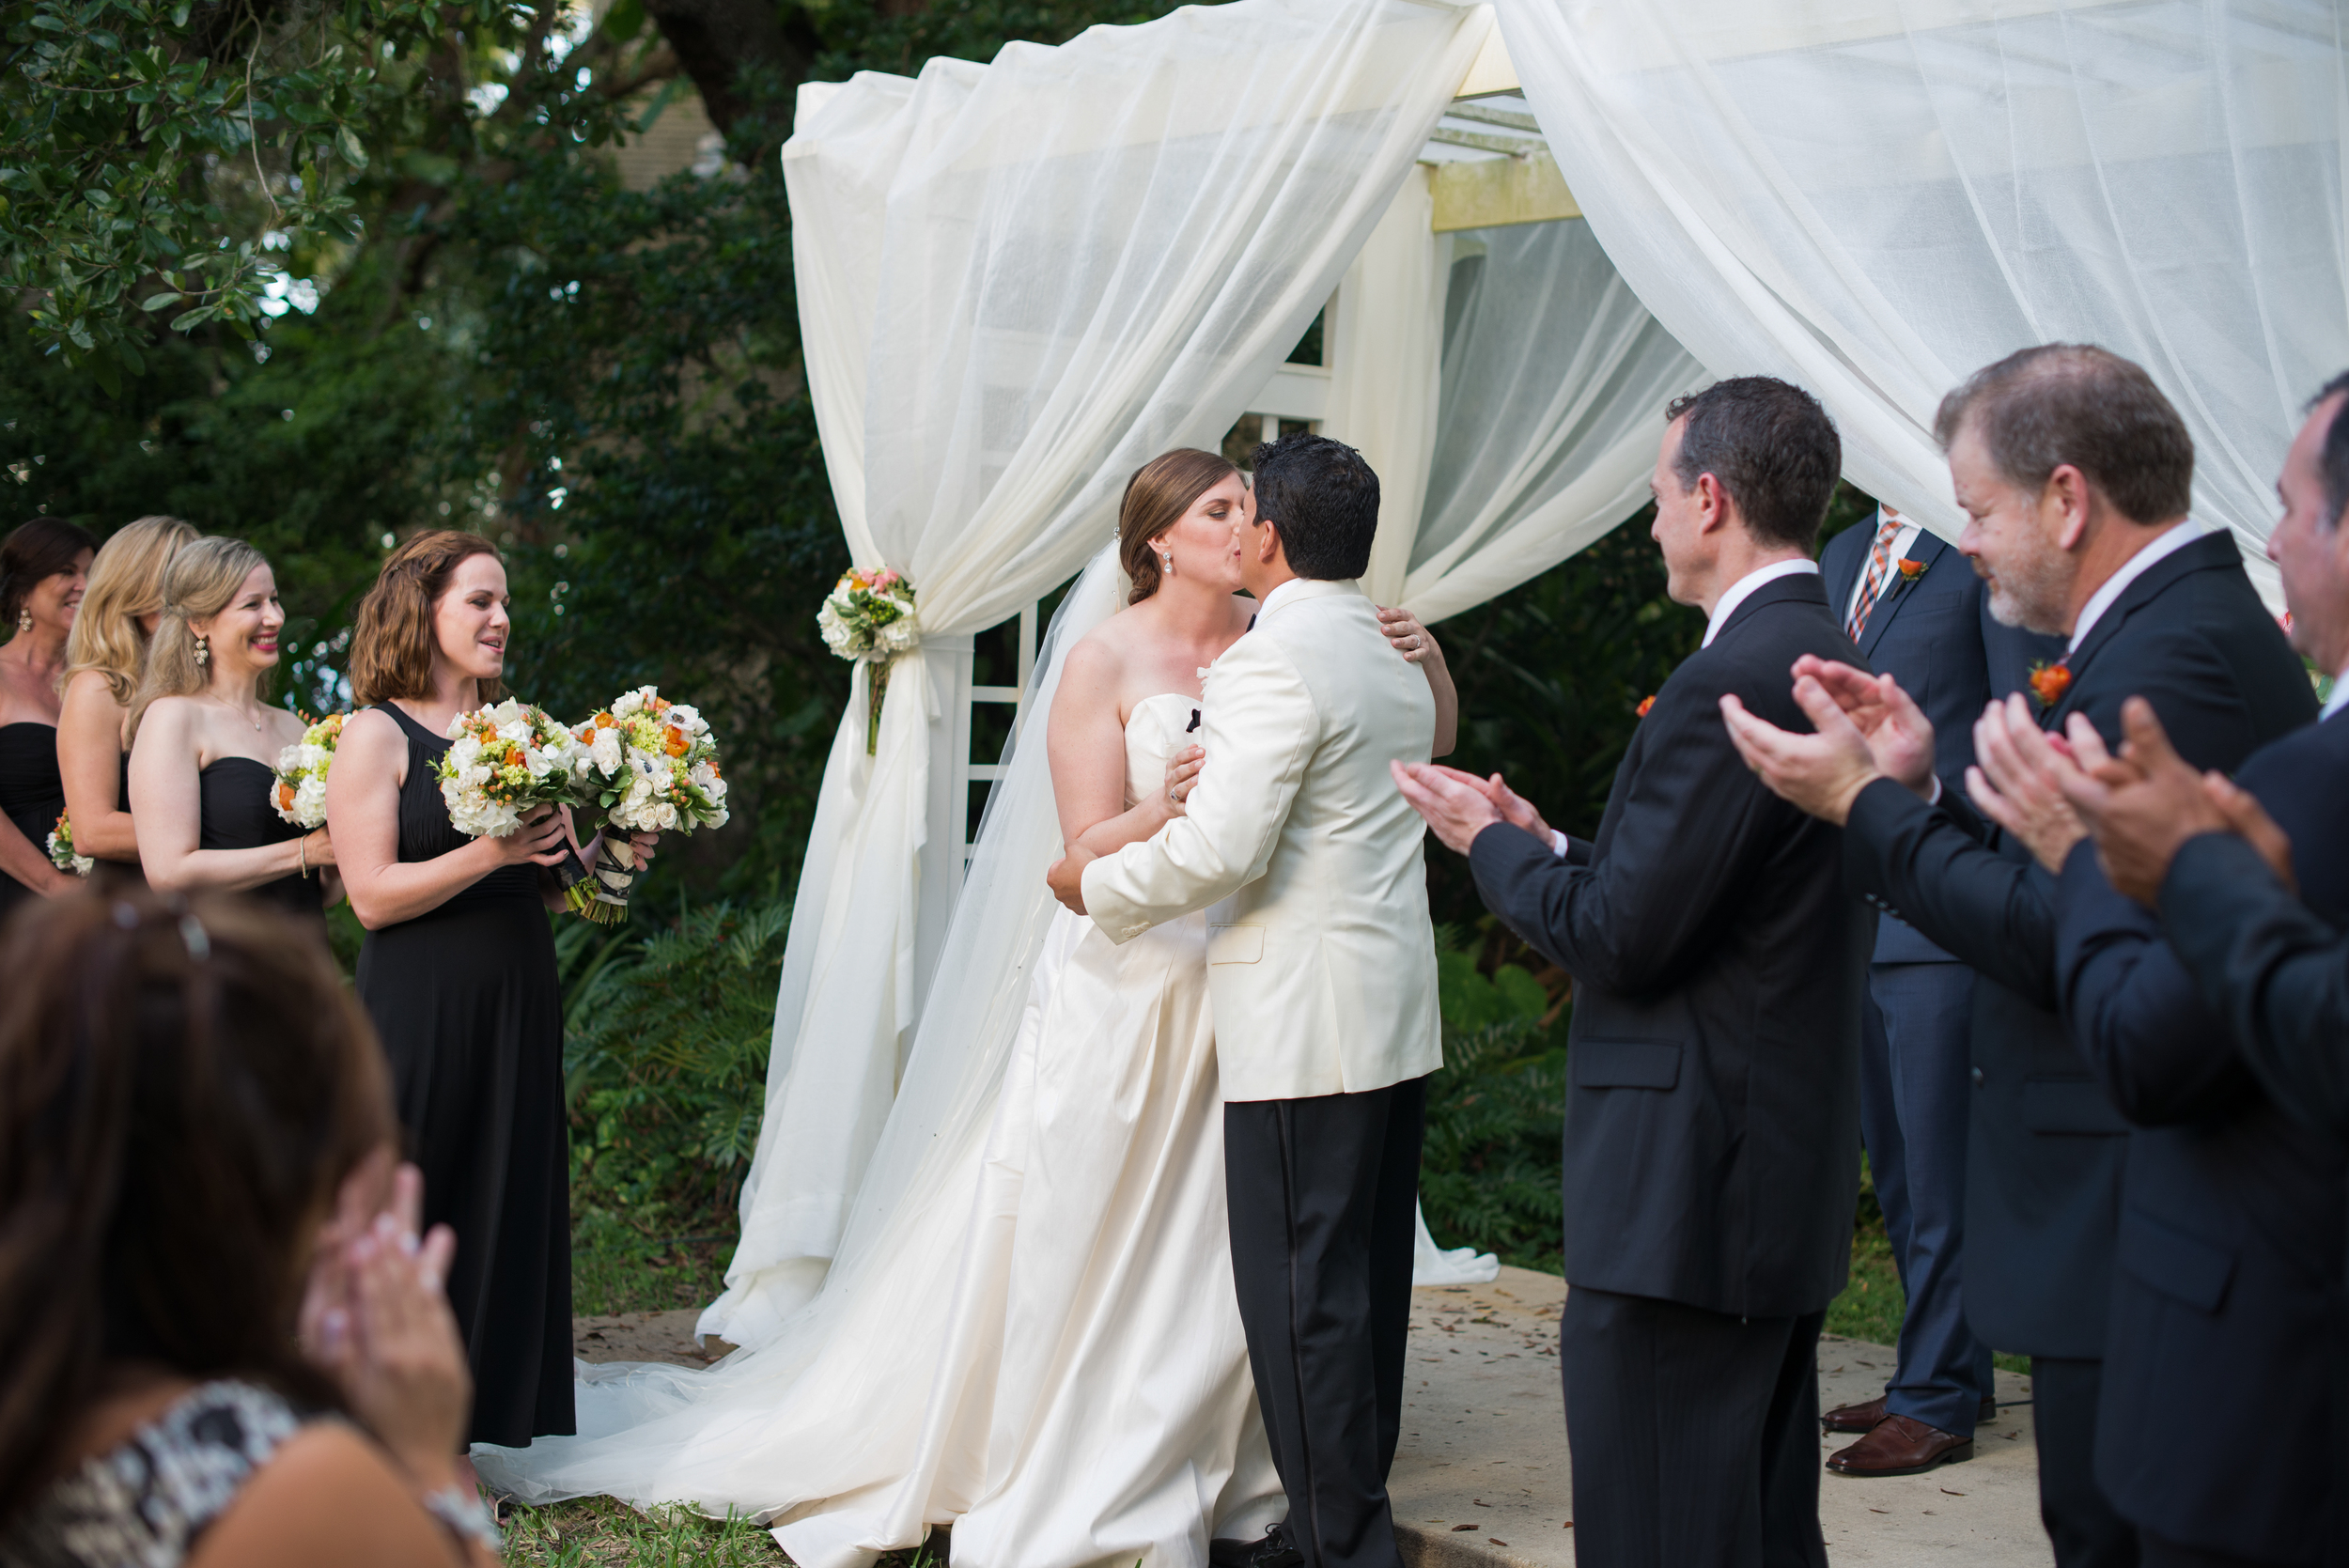 The bride's brother officiated the ceremony in front of a sheer draped arbor and their closest friends and family